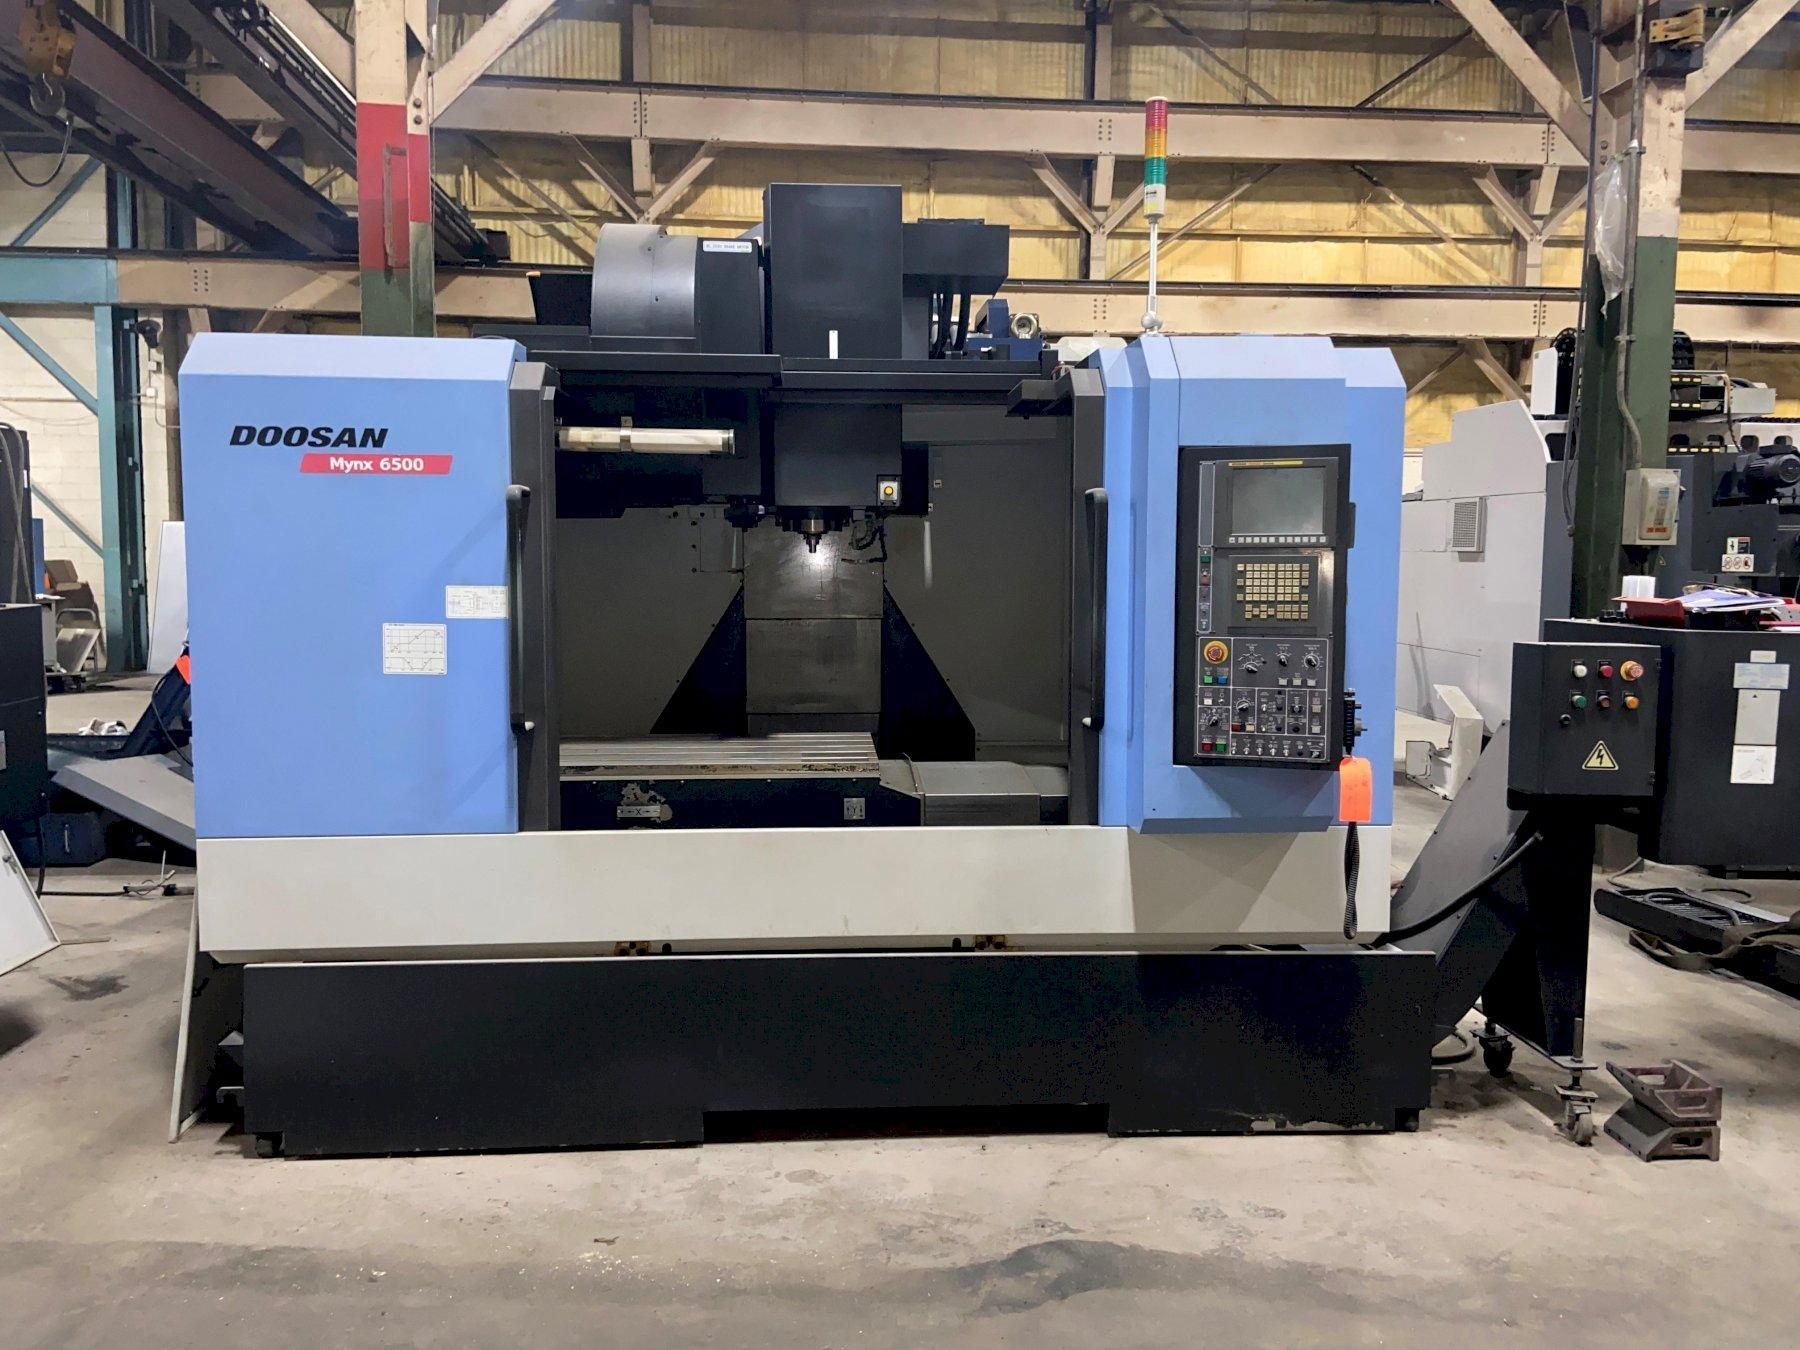 "Doosan Mynx 6500 CNC Vertical Machining Center, Fanuc Series i, 50""/26""/25"" Travels, 8K Spindle, 30 ATC, 21 Horsepower, Chiller, Box Way Design, 2011"